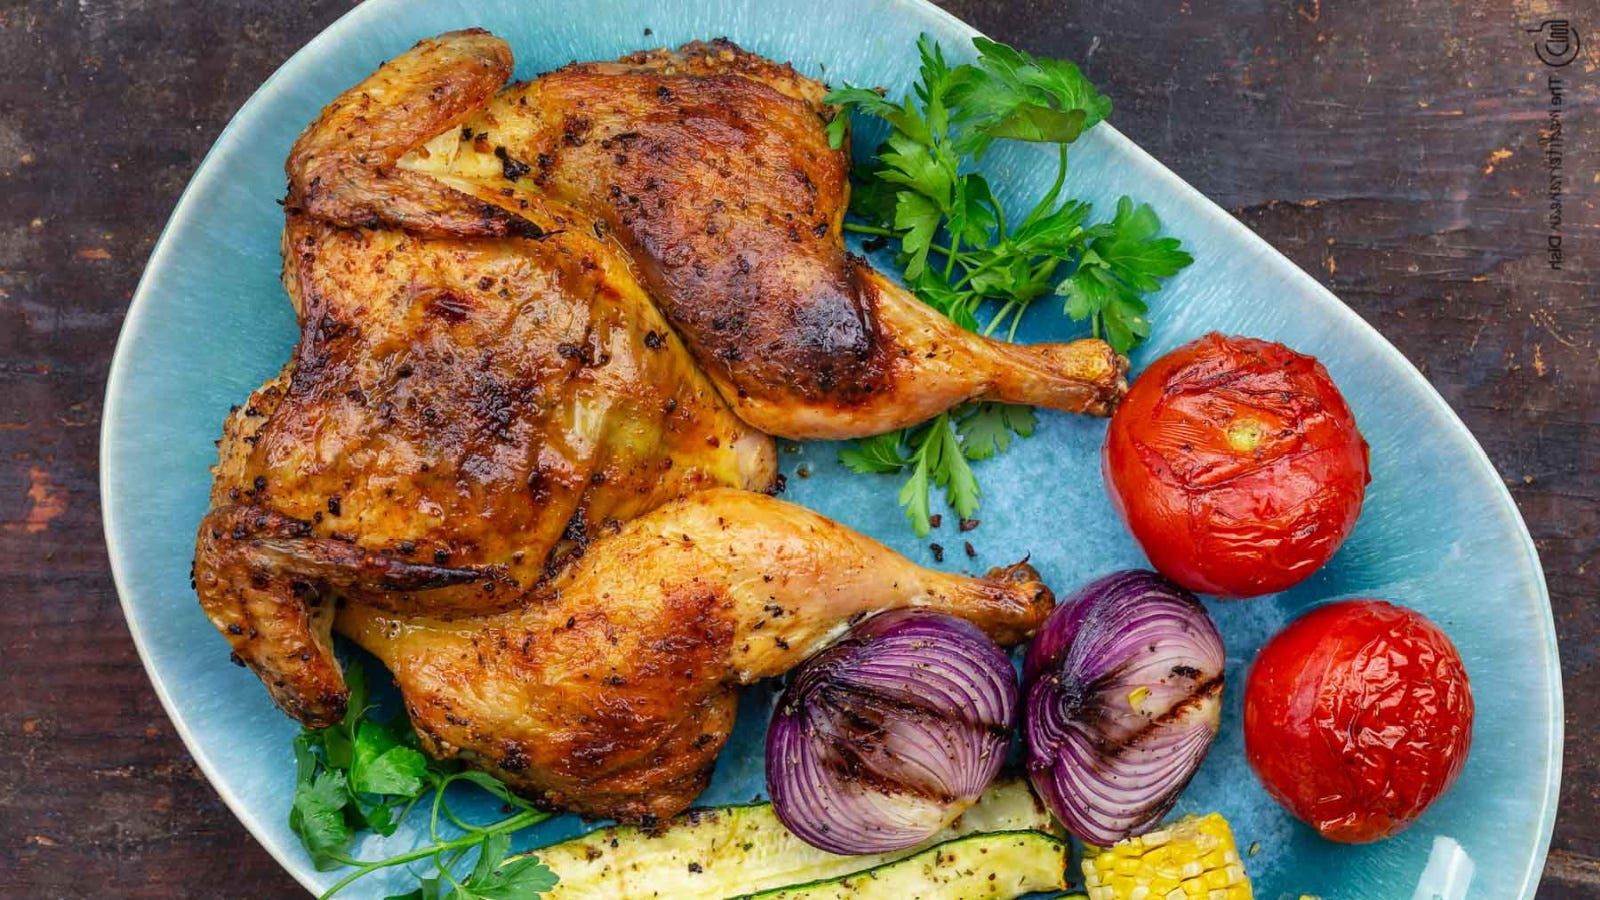 A whole grilled chicken with grilled tomatoes, red onion and zucchini.